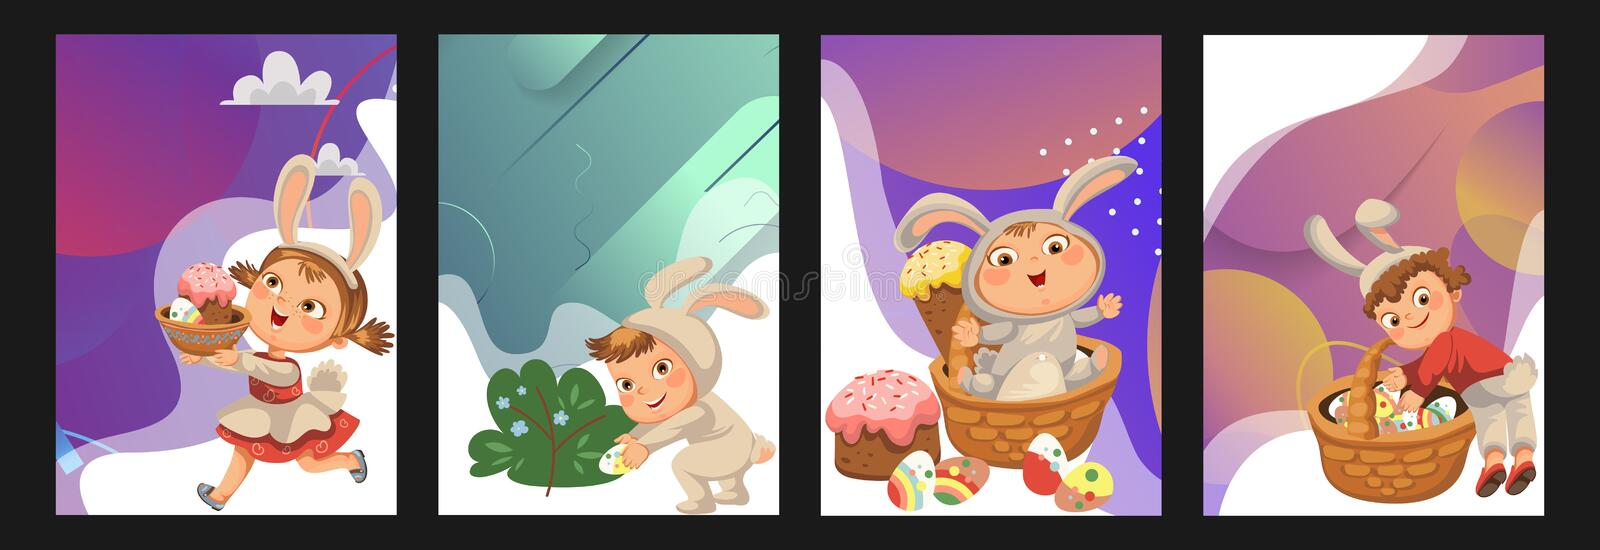 Set of Happy kids in bunny costume with ears hunting easter eggs, childrens play rabbits on spring holiday, decorative royalty free stock photography